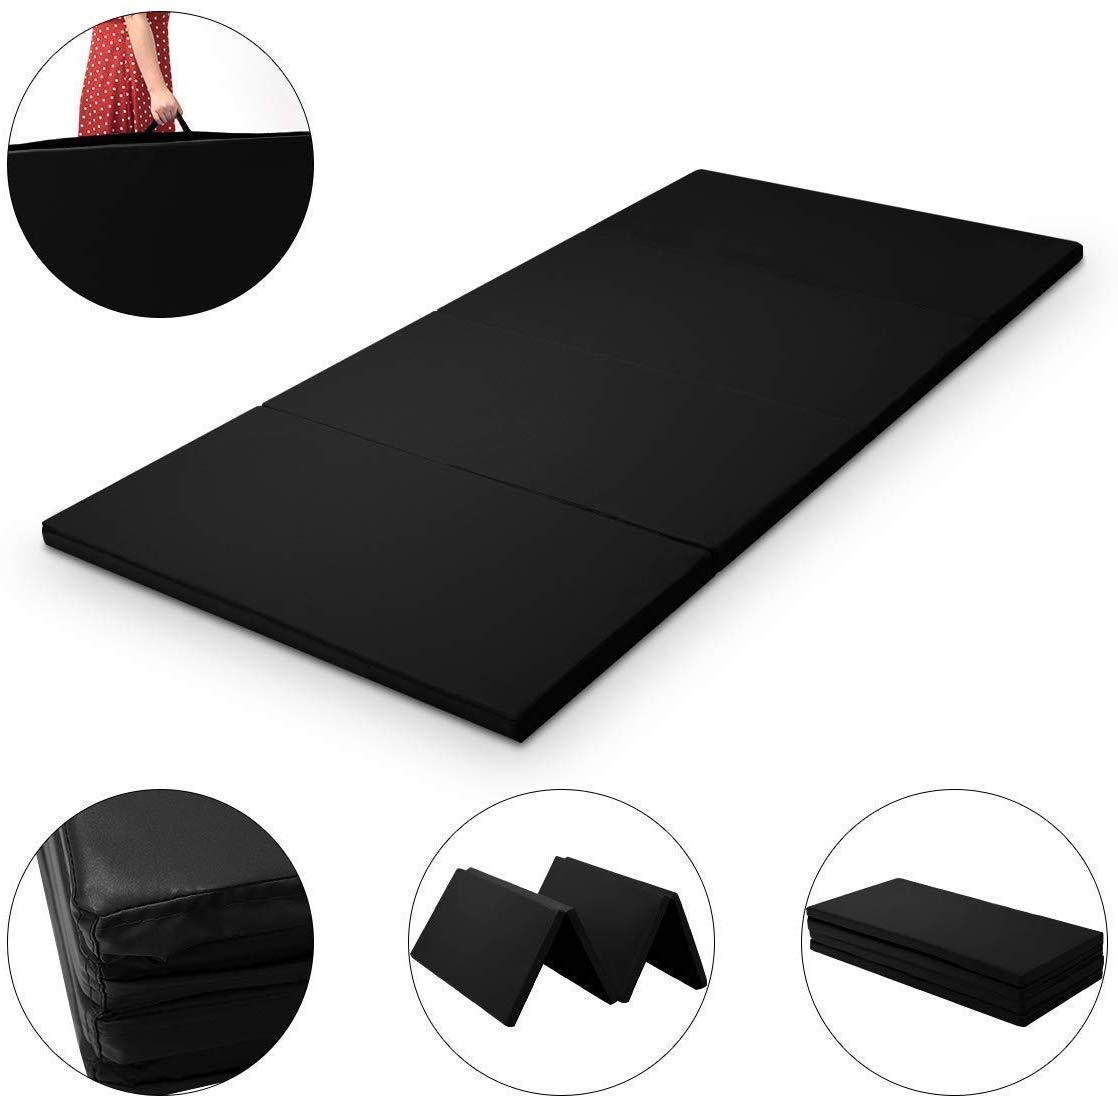 3Mx1.2Mx5cm Folding Tumbling Mat Gymnastics Gym Exercise Mat High Density - Black